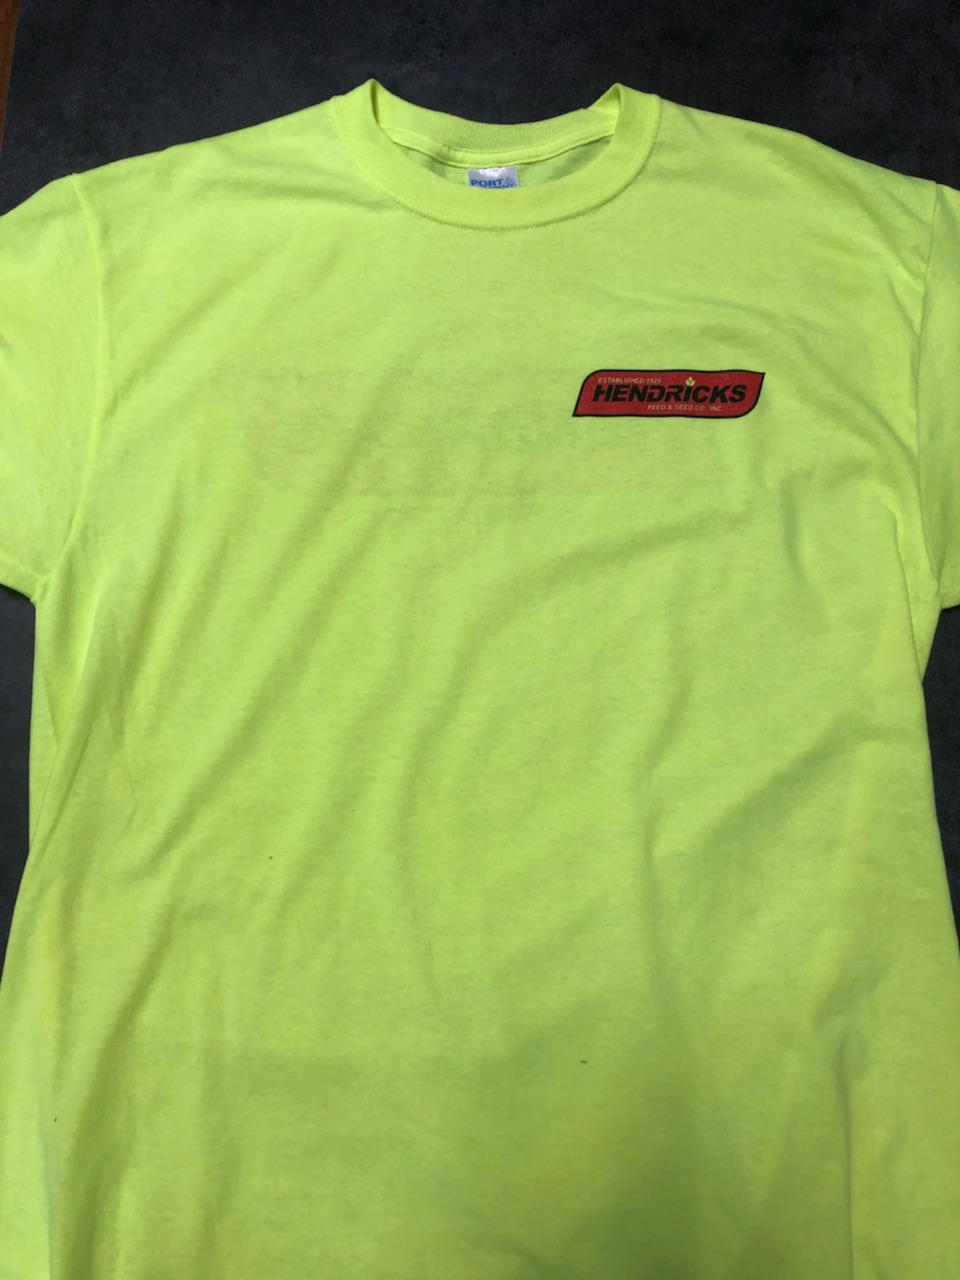 Photo of Hendricks Feed T-shirt. The shirt is yellow with the red Hendricks logo across the front left breast. Written in black and yellow on the red is '(yellow) Estabished 1929, (black) Hendricks, (yellow) Feed & Seed Co., Inc.' is in the banner and 'Dubuque, Iowa' is below the banner.